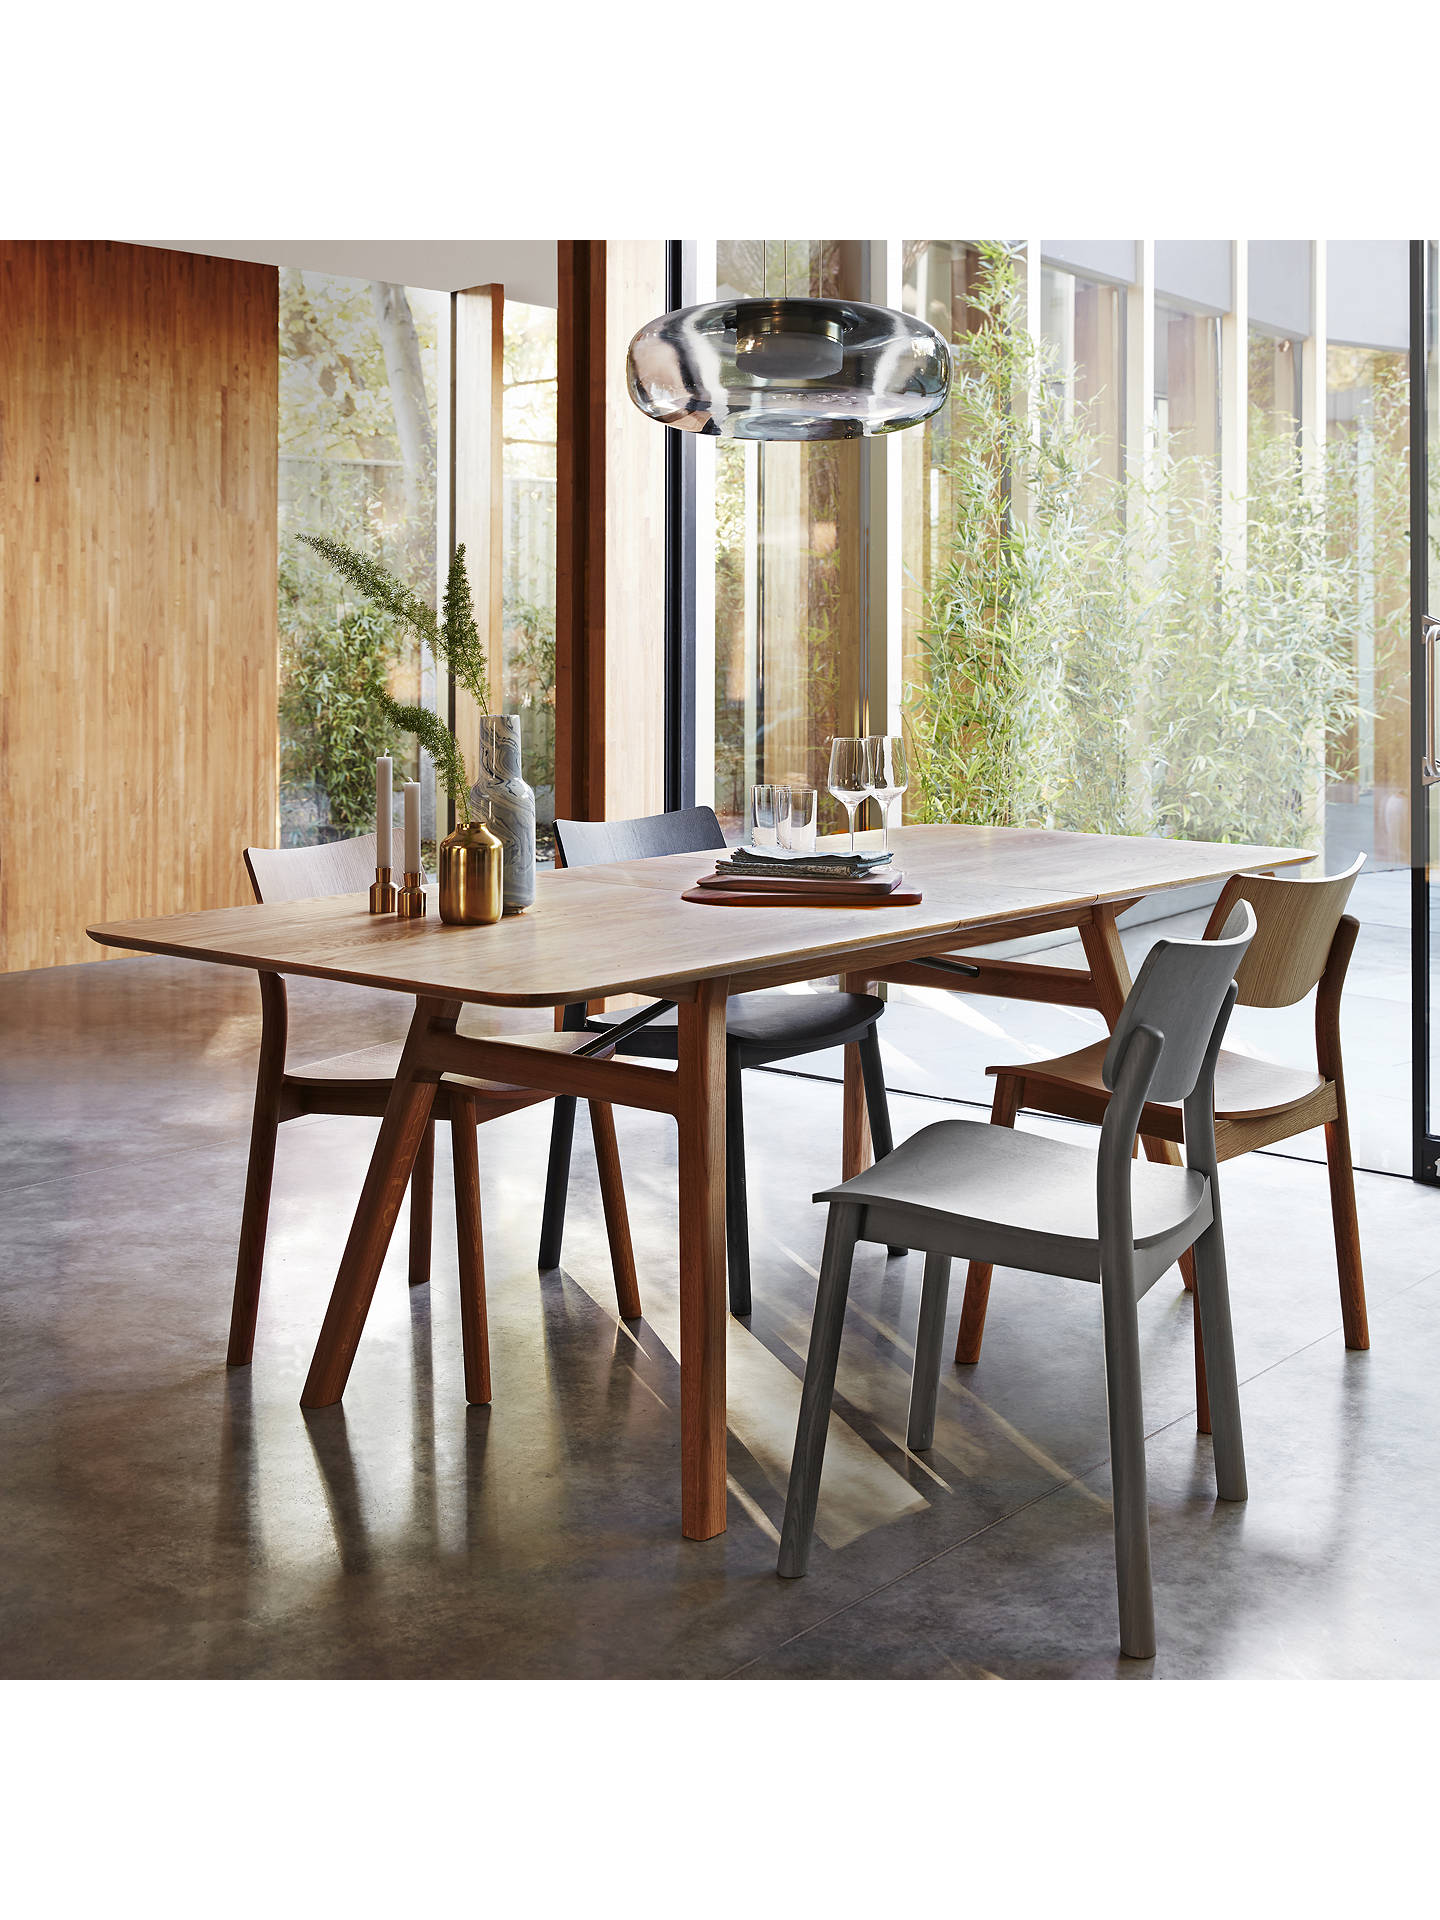 Design Project By John Lewis No 036 8 10 Seater Extending Dining Table At John Lewis Partners